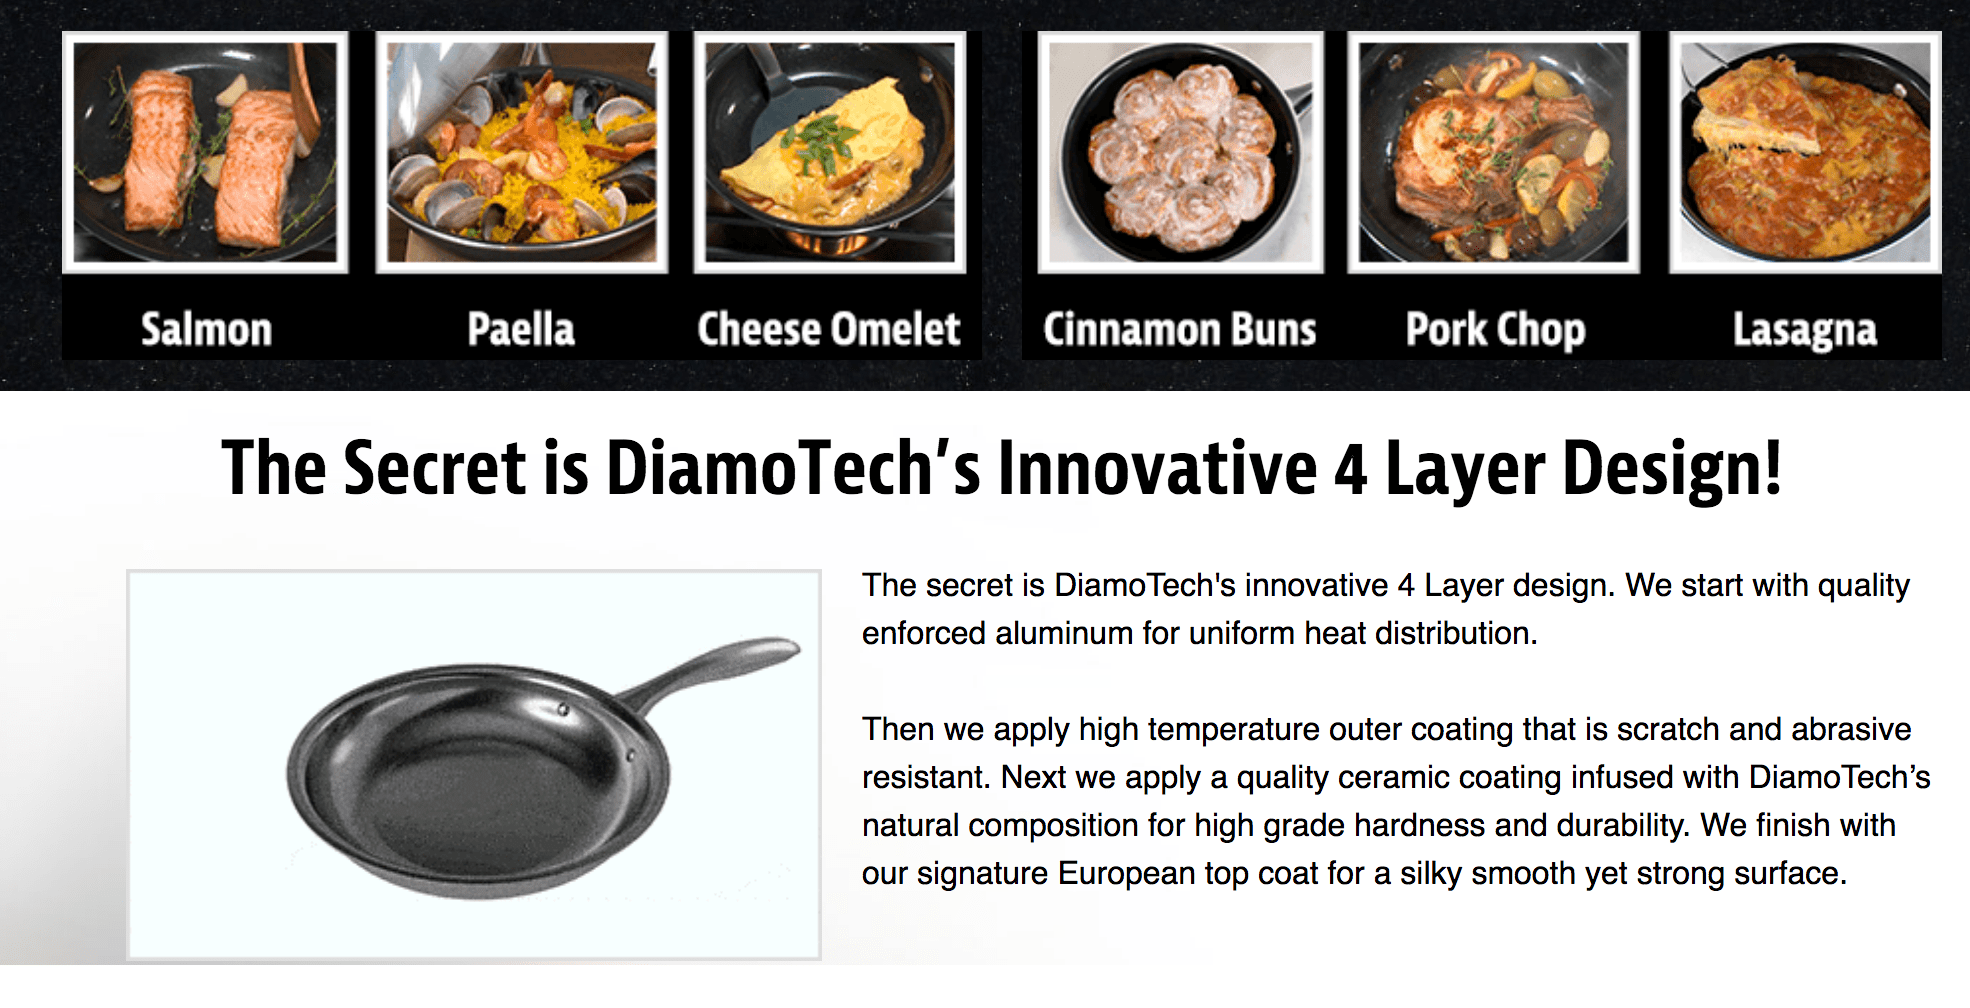 Diamotech Pan Reviews Cinnamon Buns See On Tv Dollar Stores